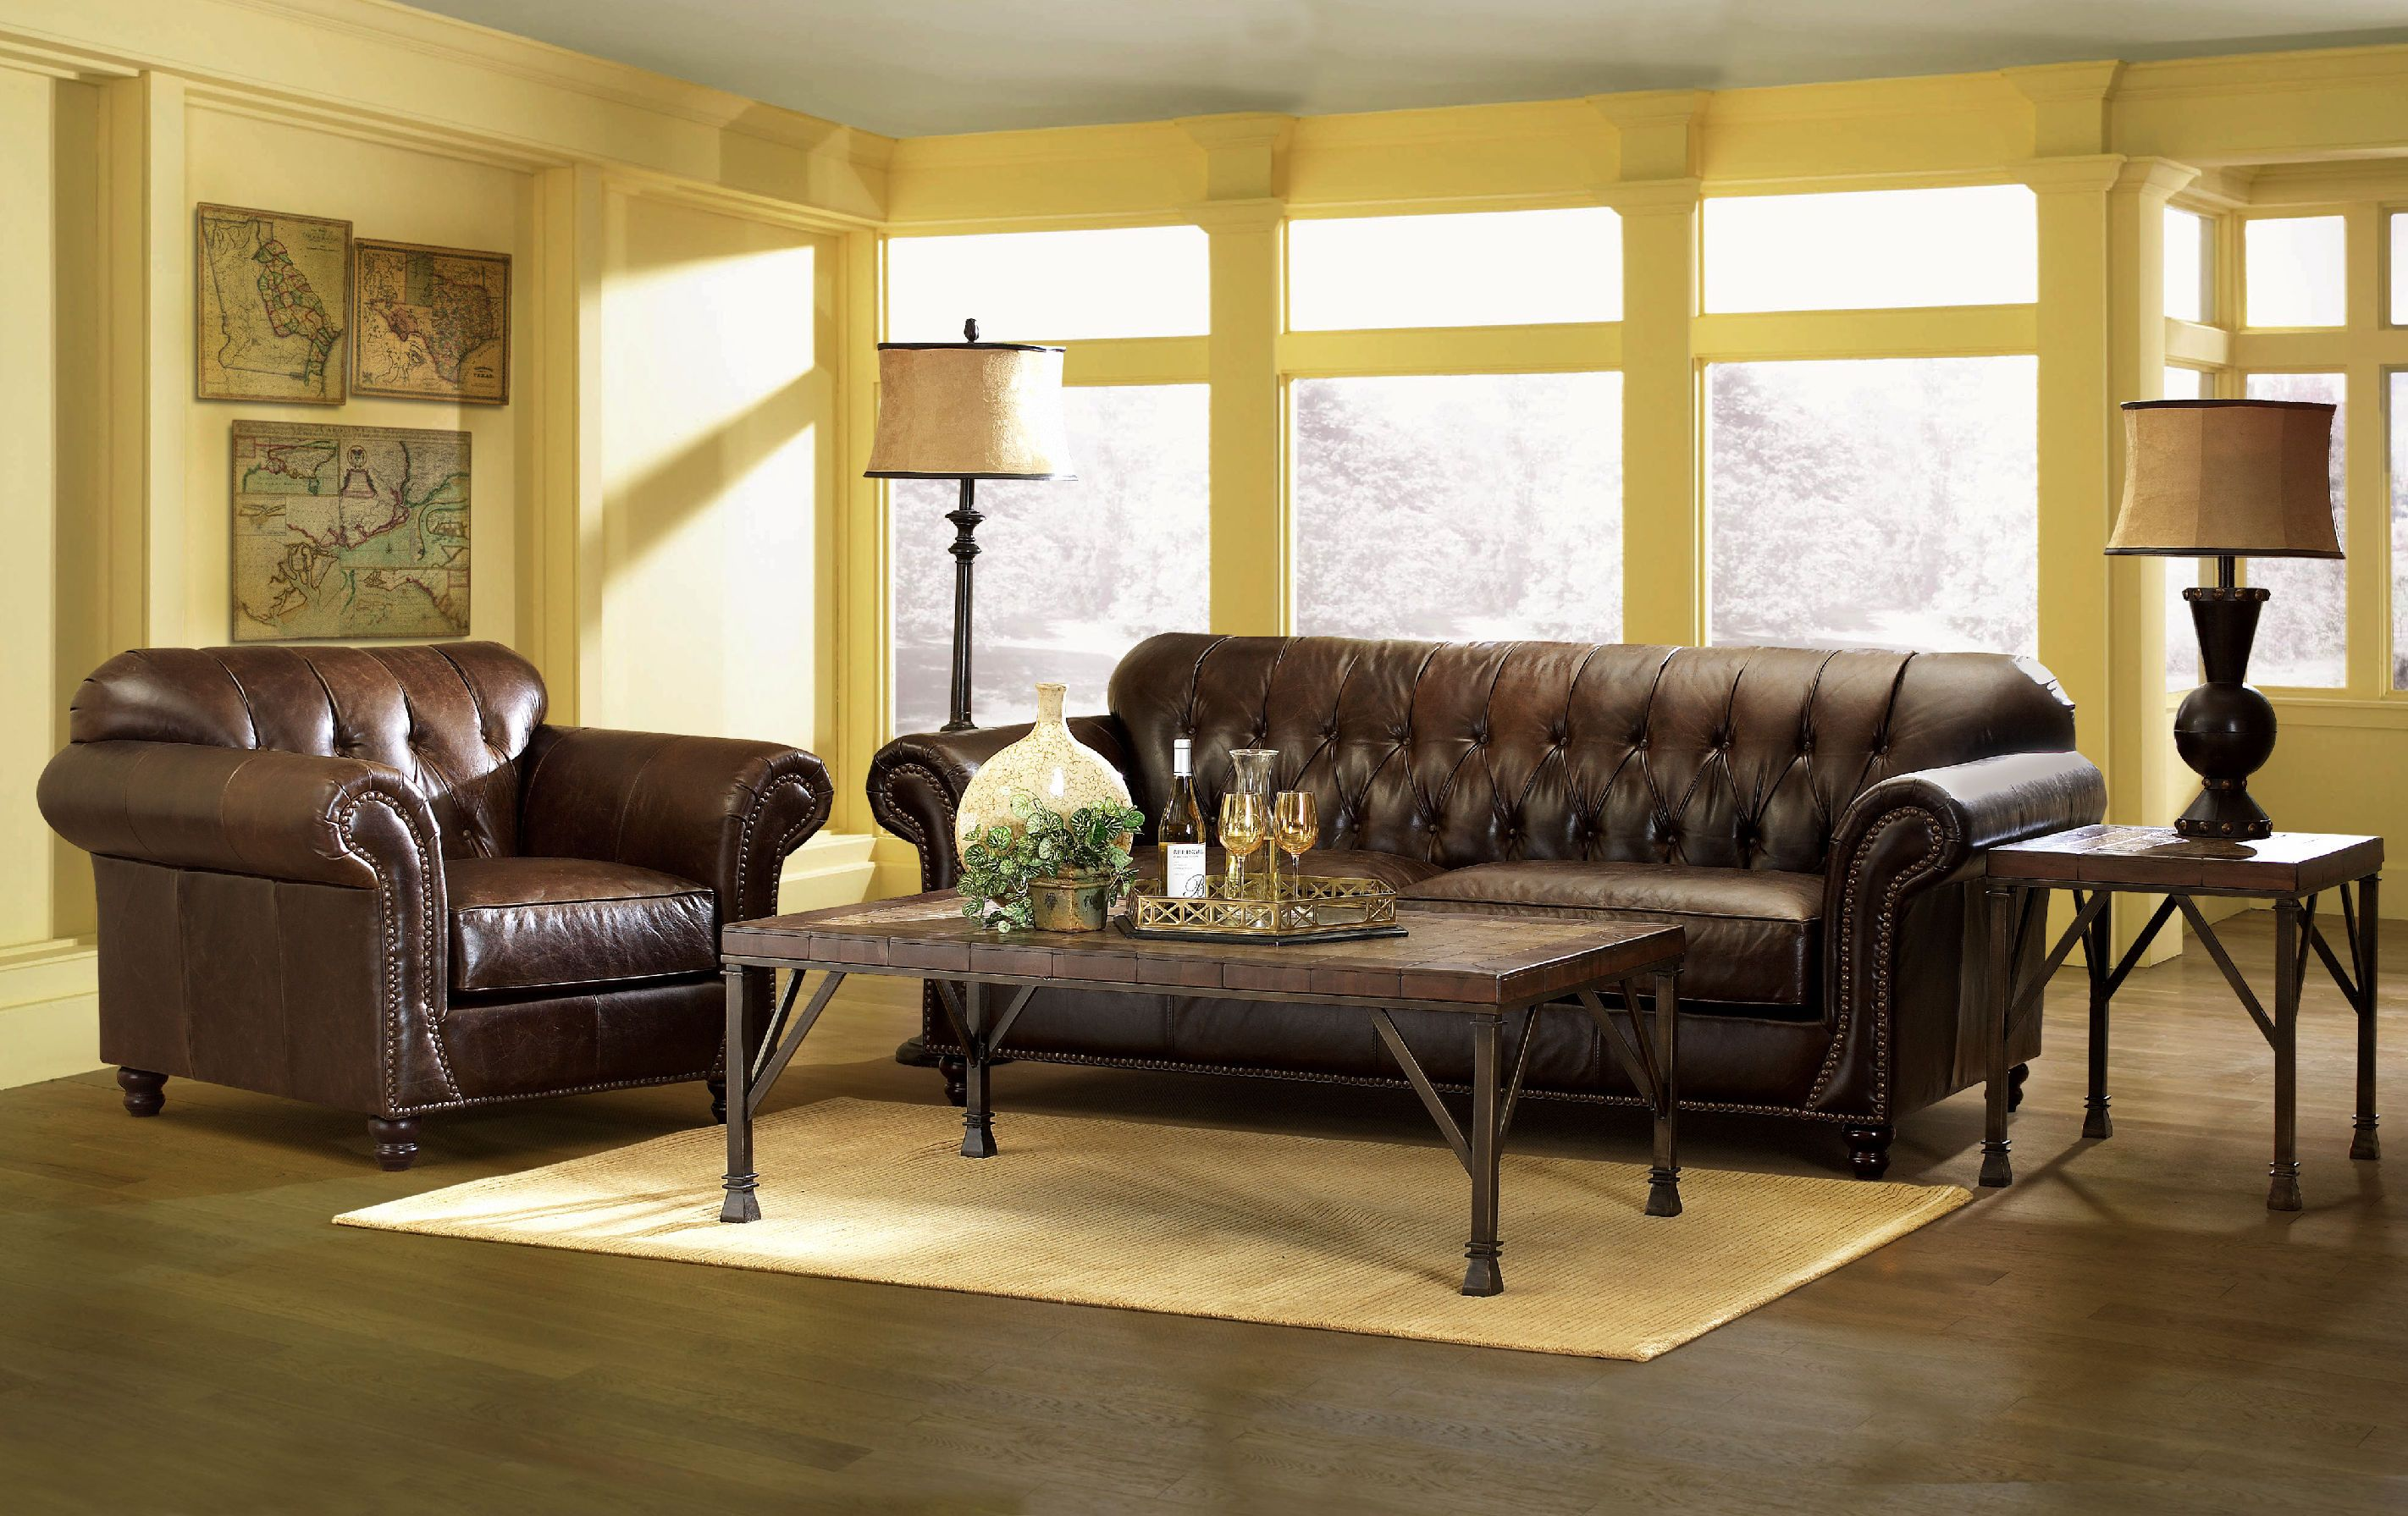 Mid Century Living Room Set Excellent Mid Century Tufted Leather Brown Couches With Shade